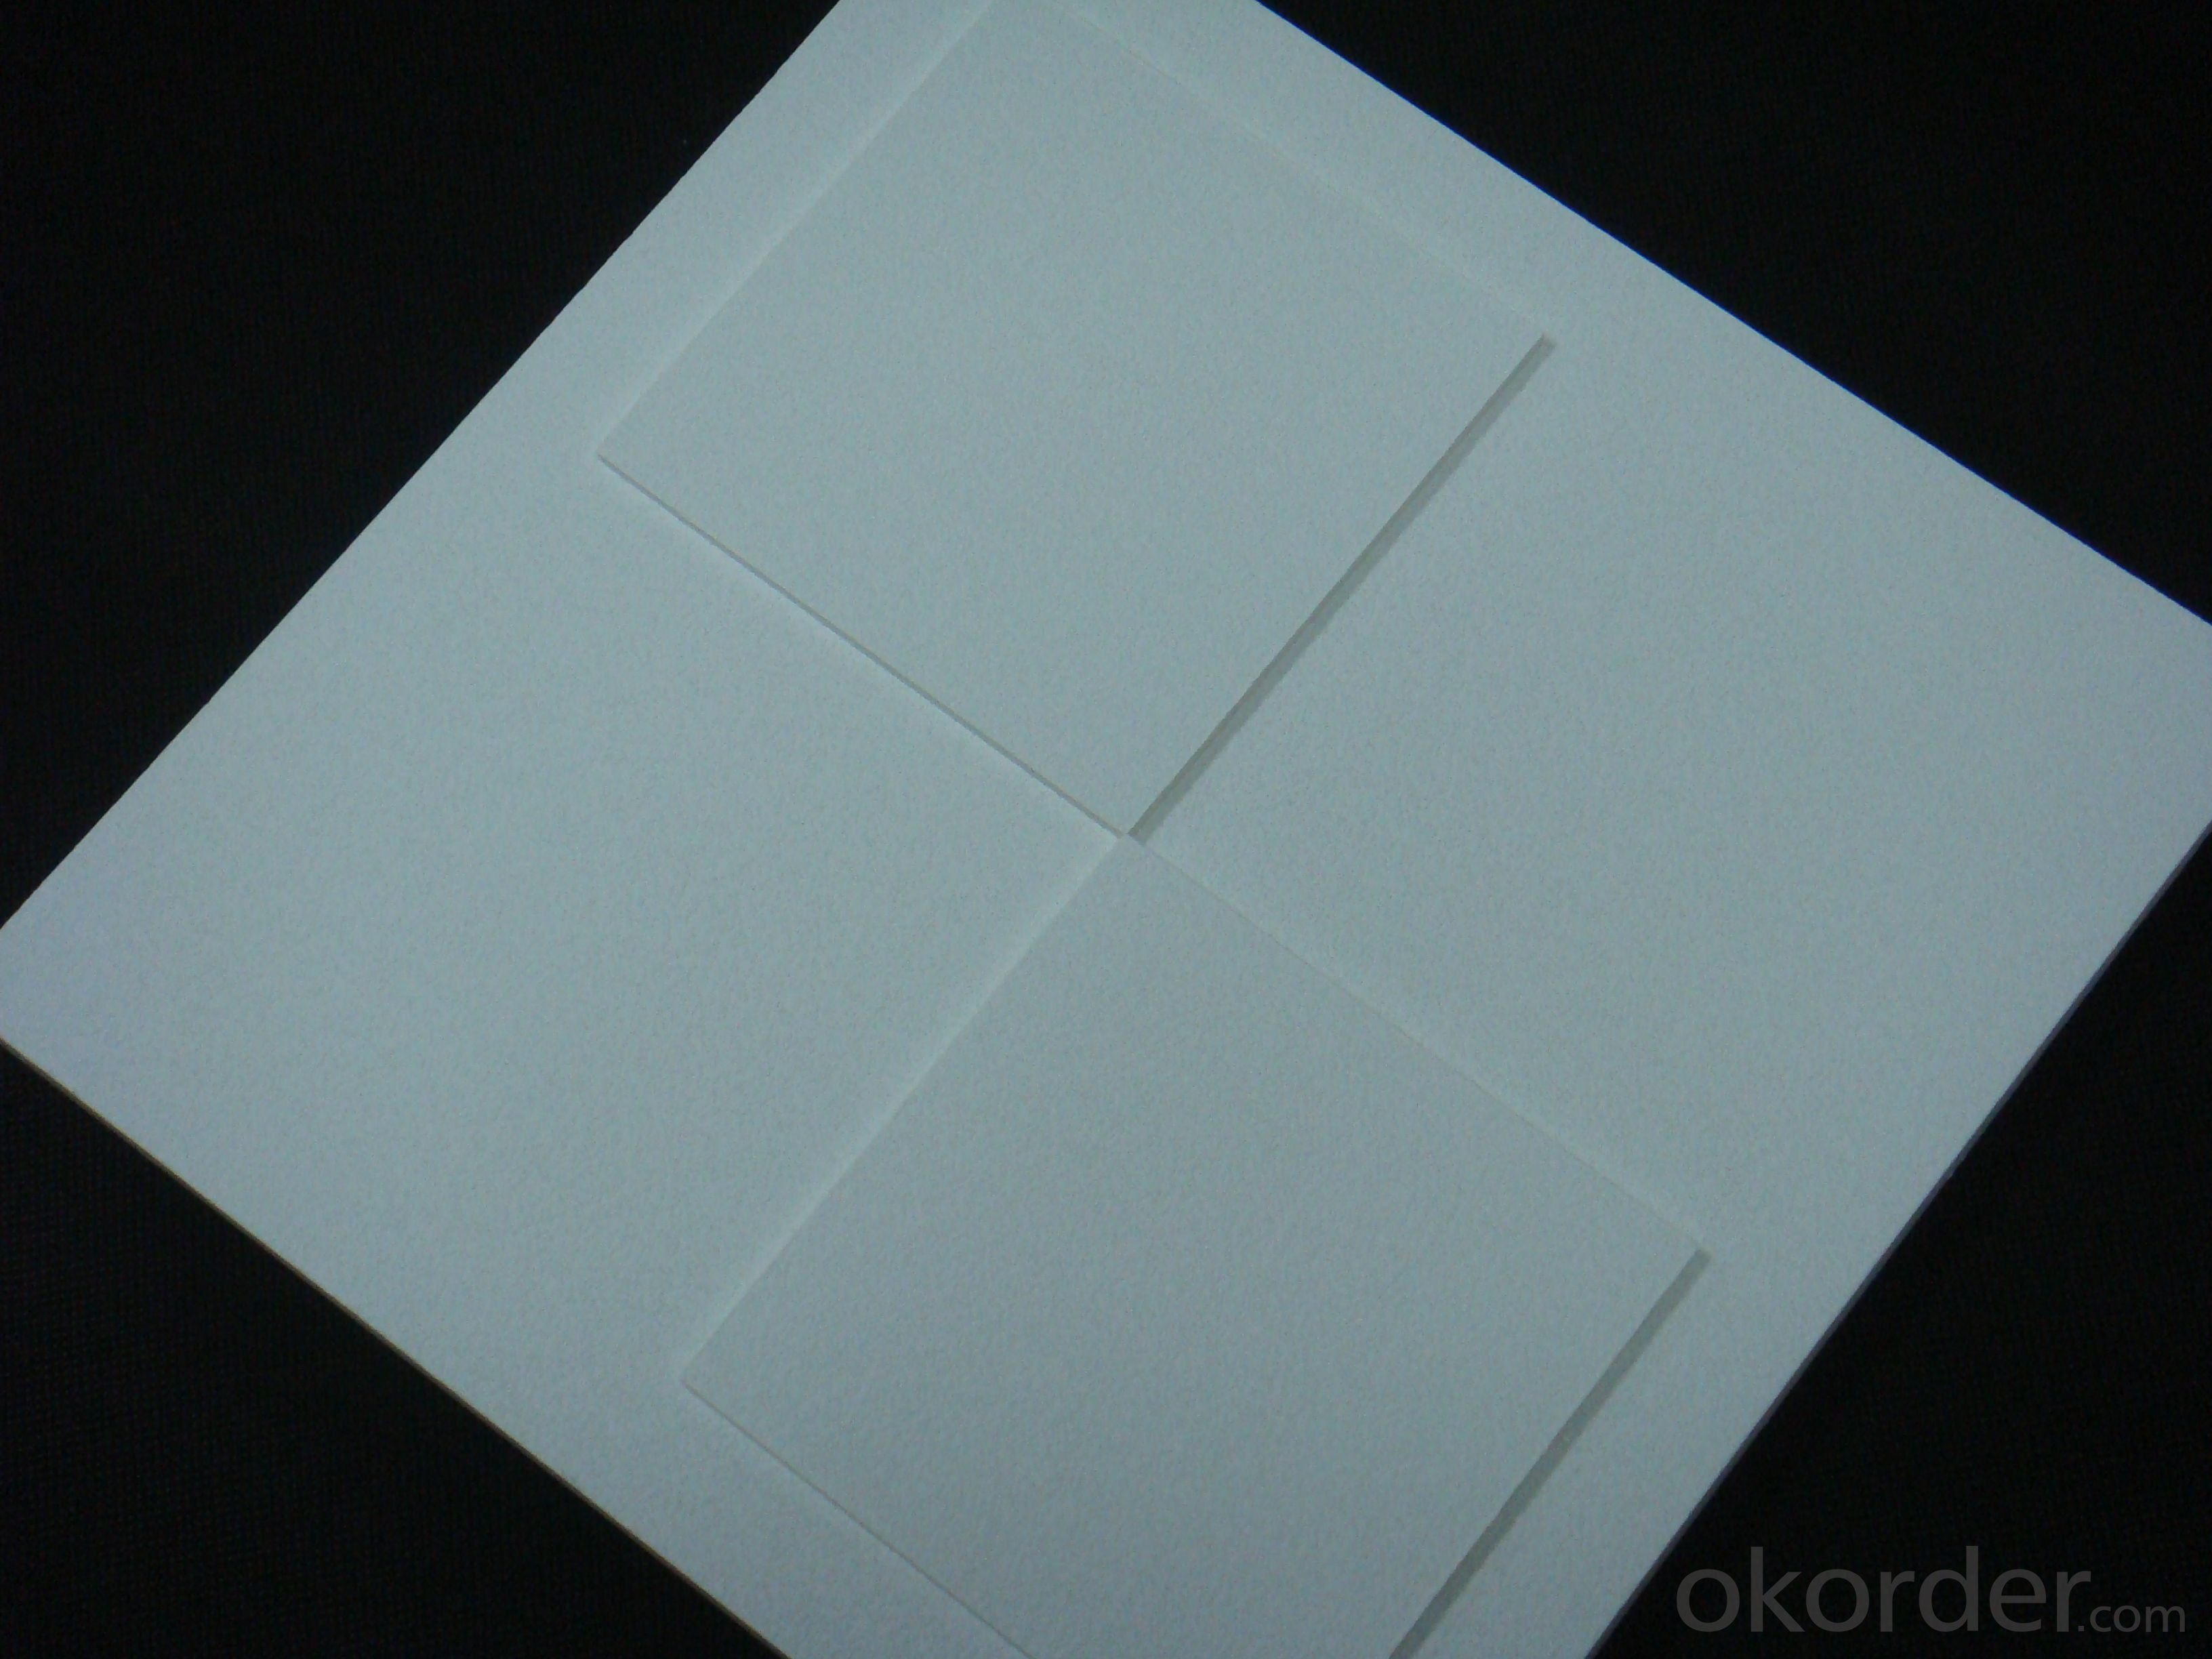 Acoustic Fiberglass Ceiling Well Quality Square 12mm